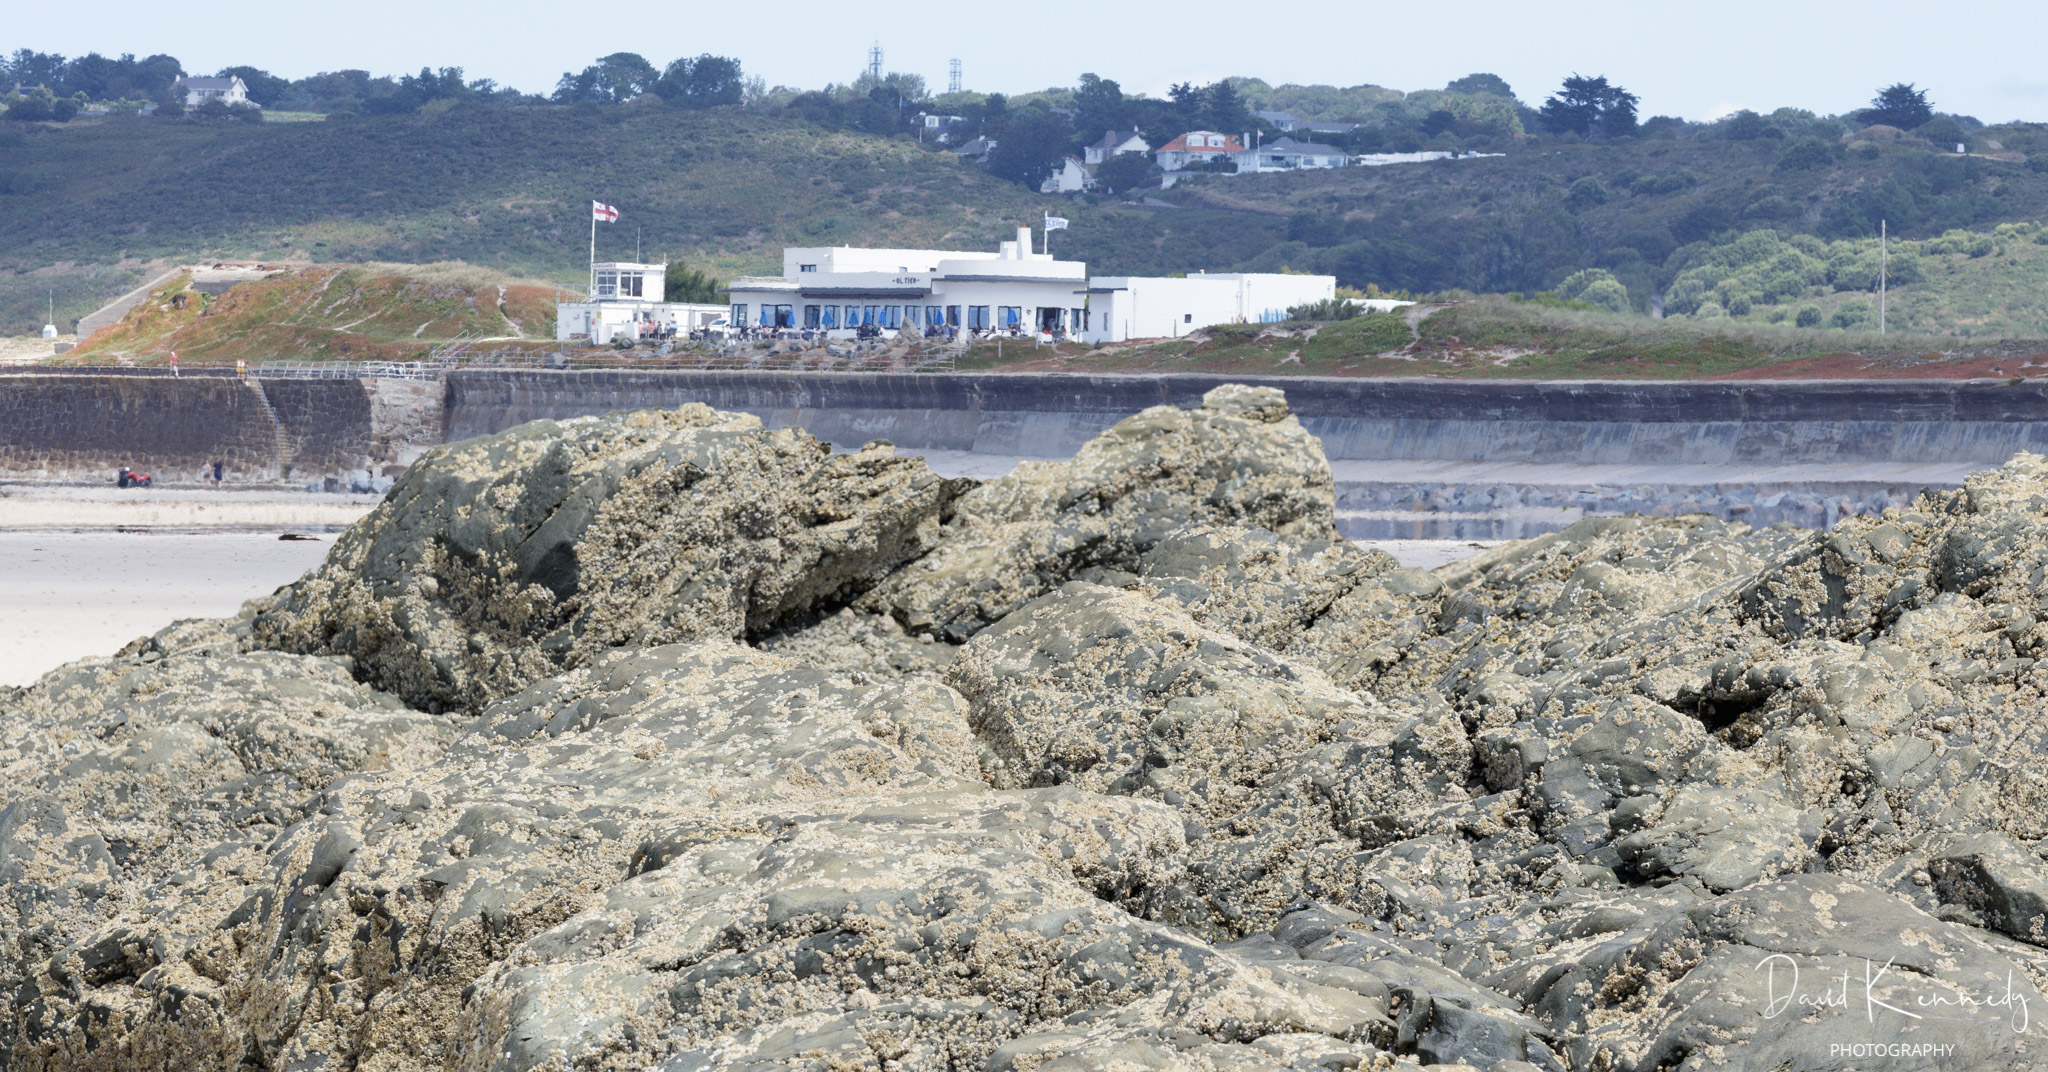 View over a foreground rock, with the sea wall and a large café restaurant above.